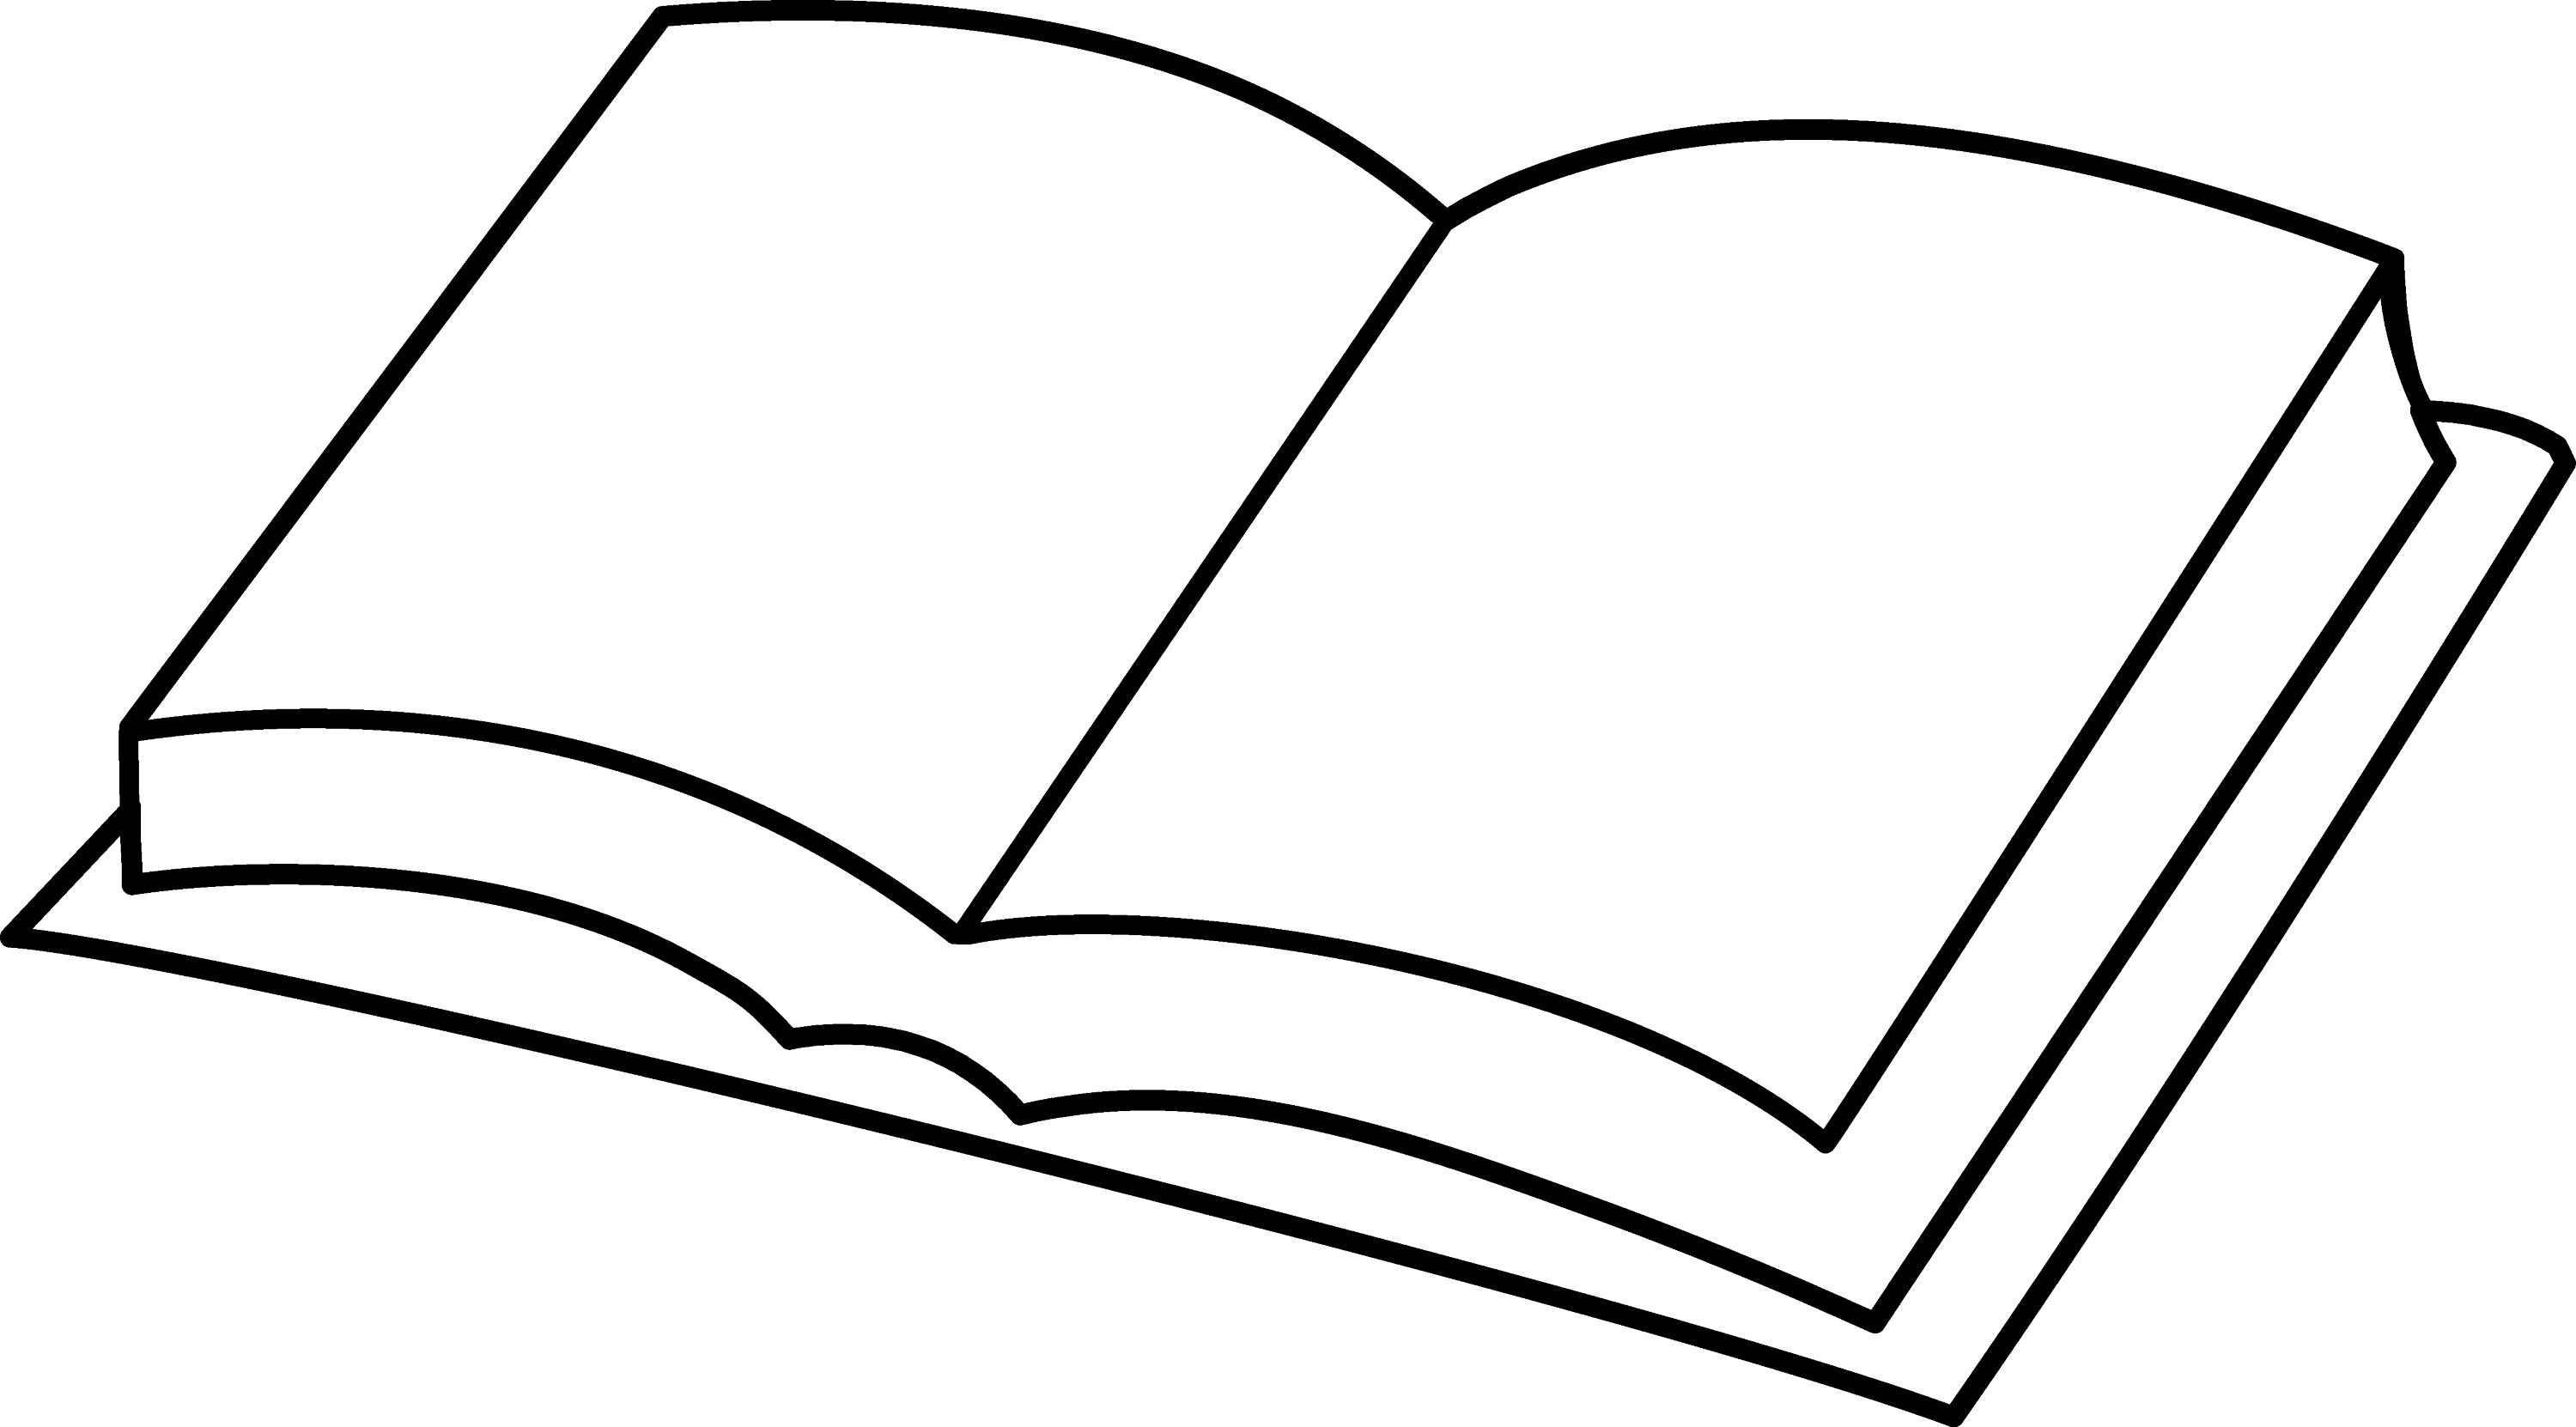 Open books coloring pages ~ Blank Book Coloring Page - Free Clip Art